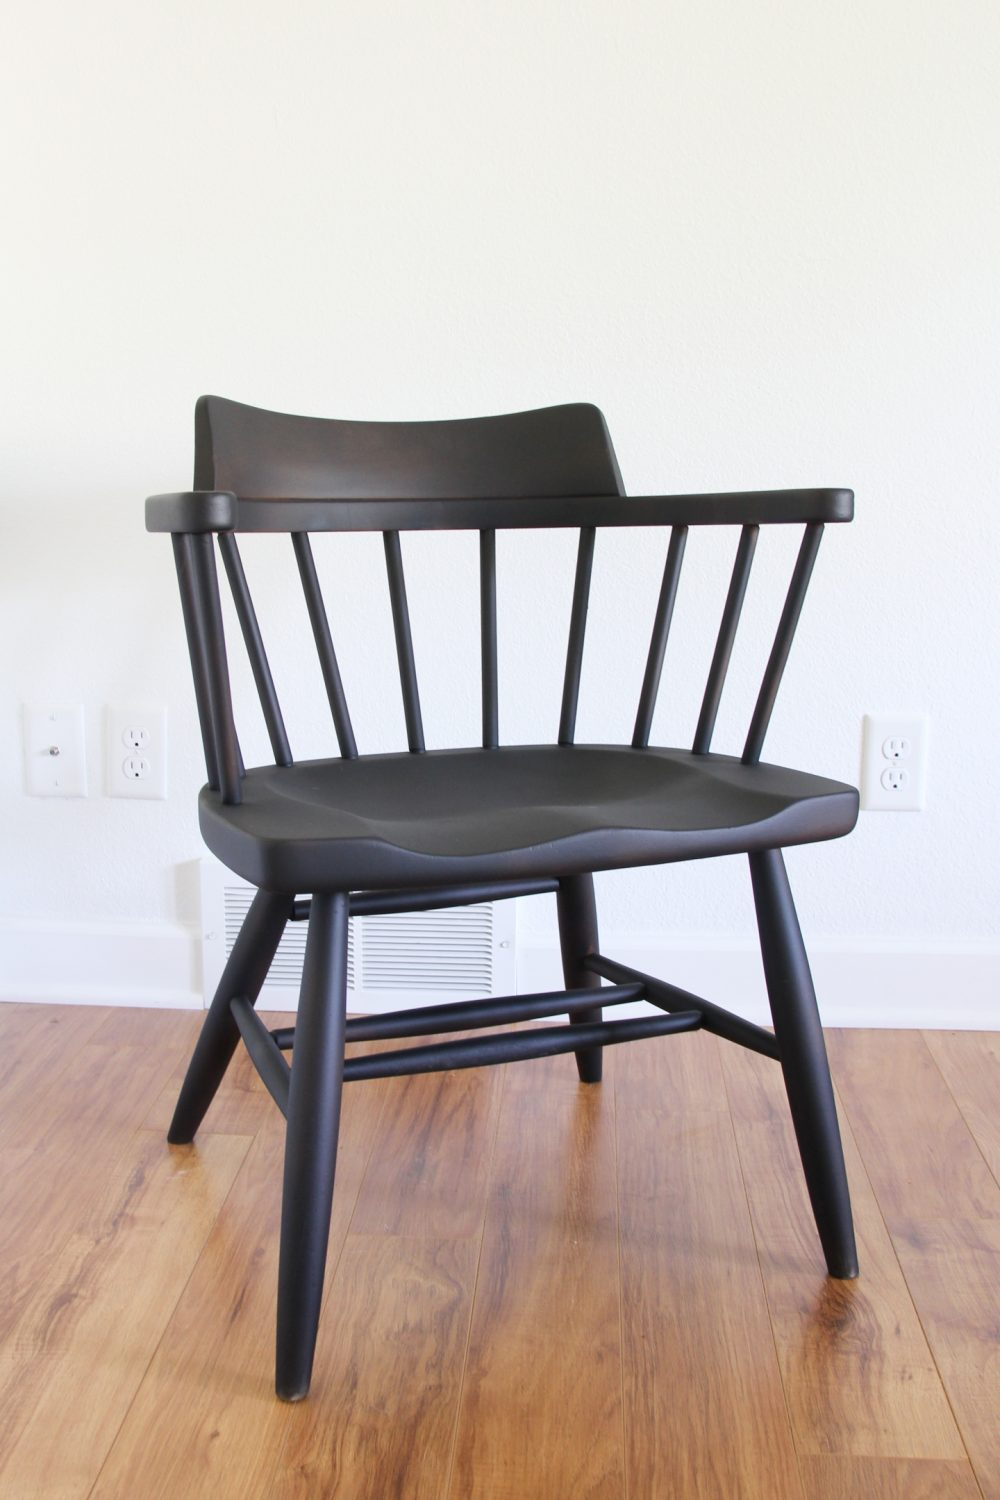 Painting spindle dining chairs black | Lumber Loves Lace | lumberloveslace.com